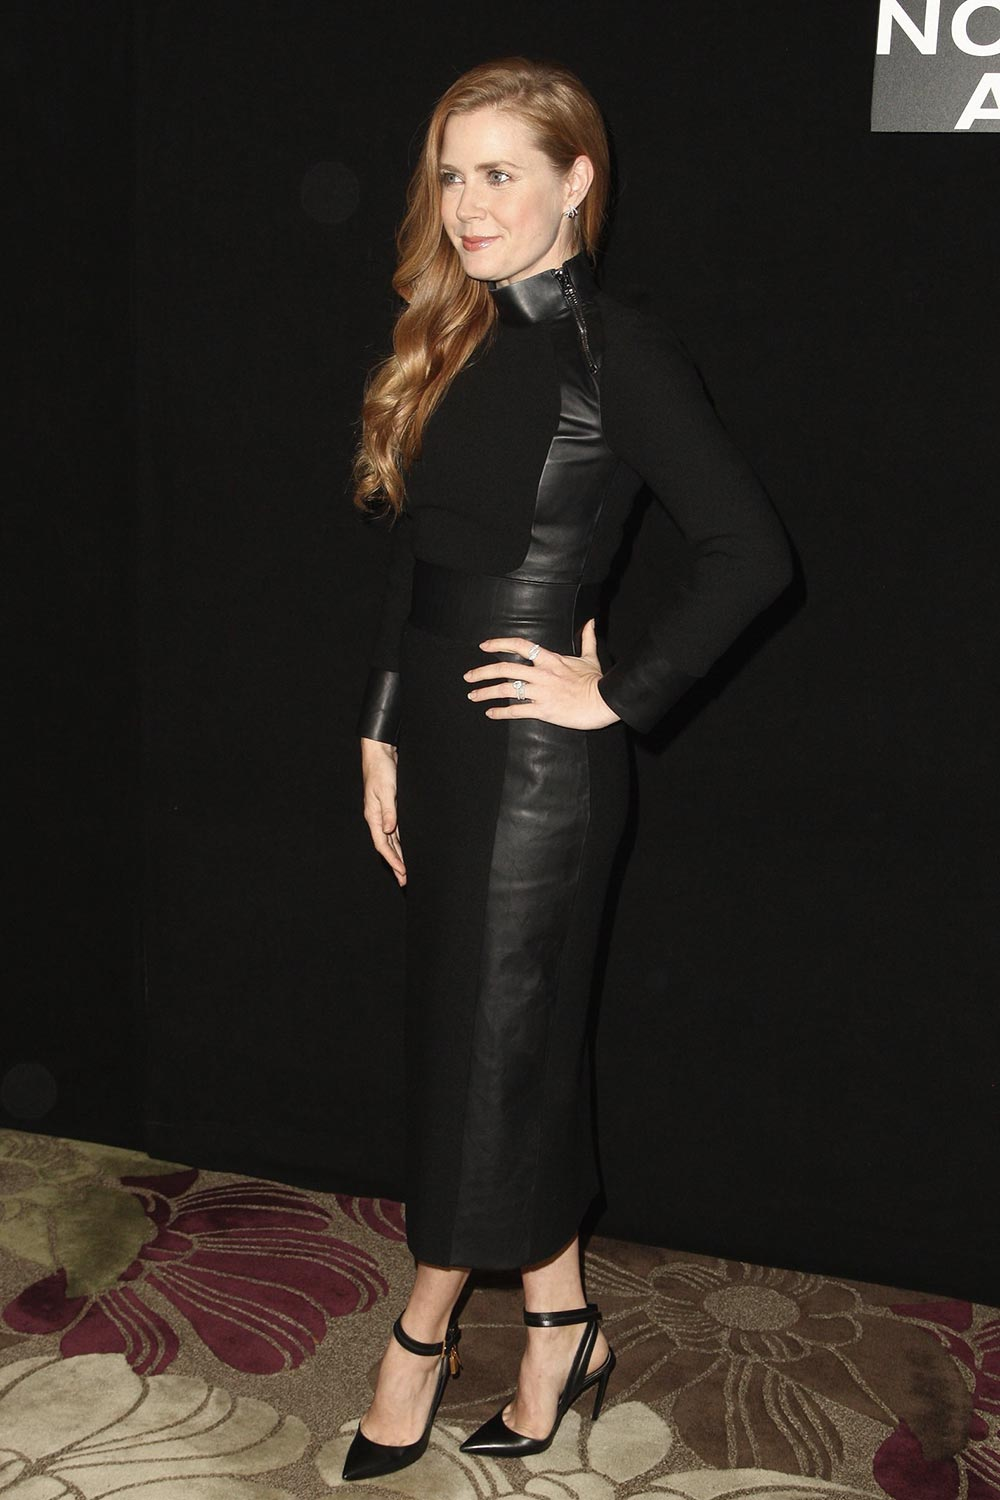 Amy Adams attends Nocturnal Animals Photocall